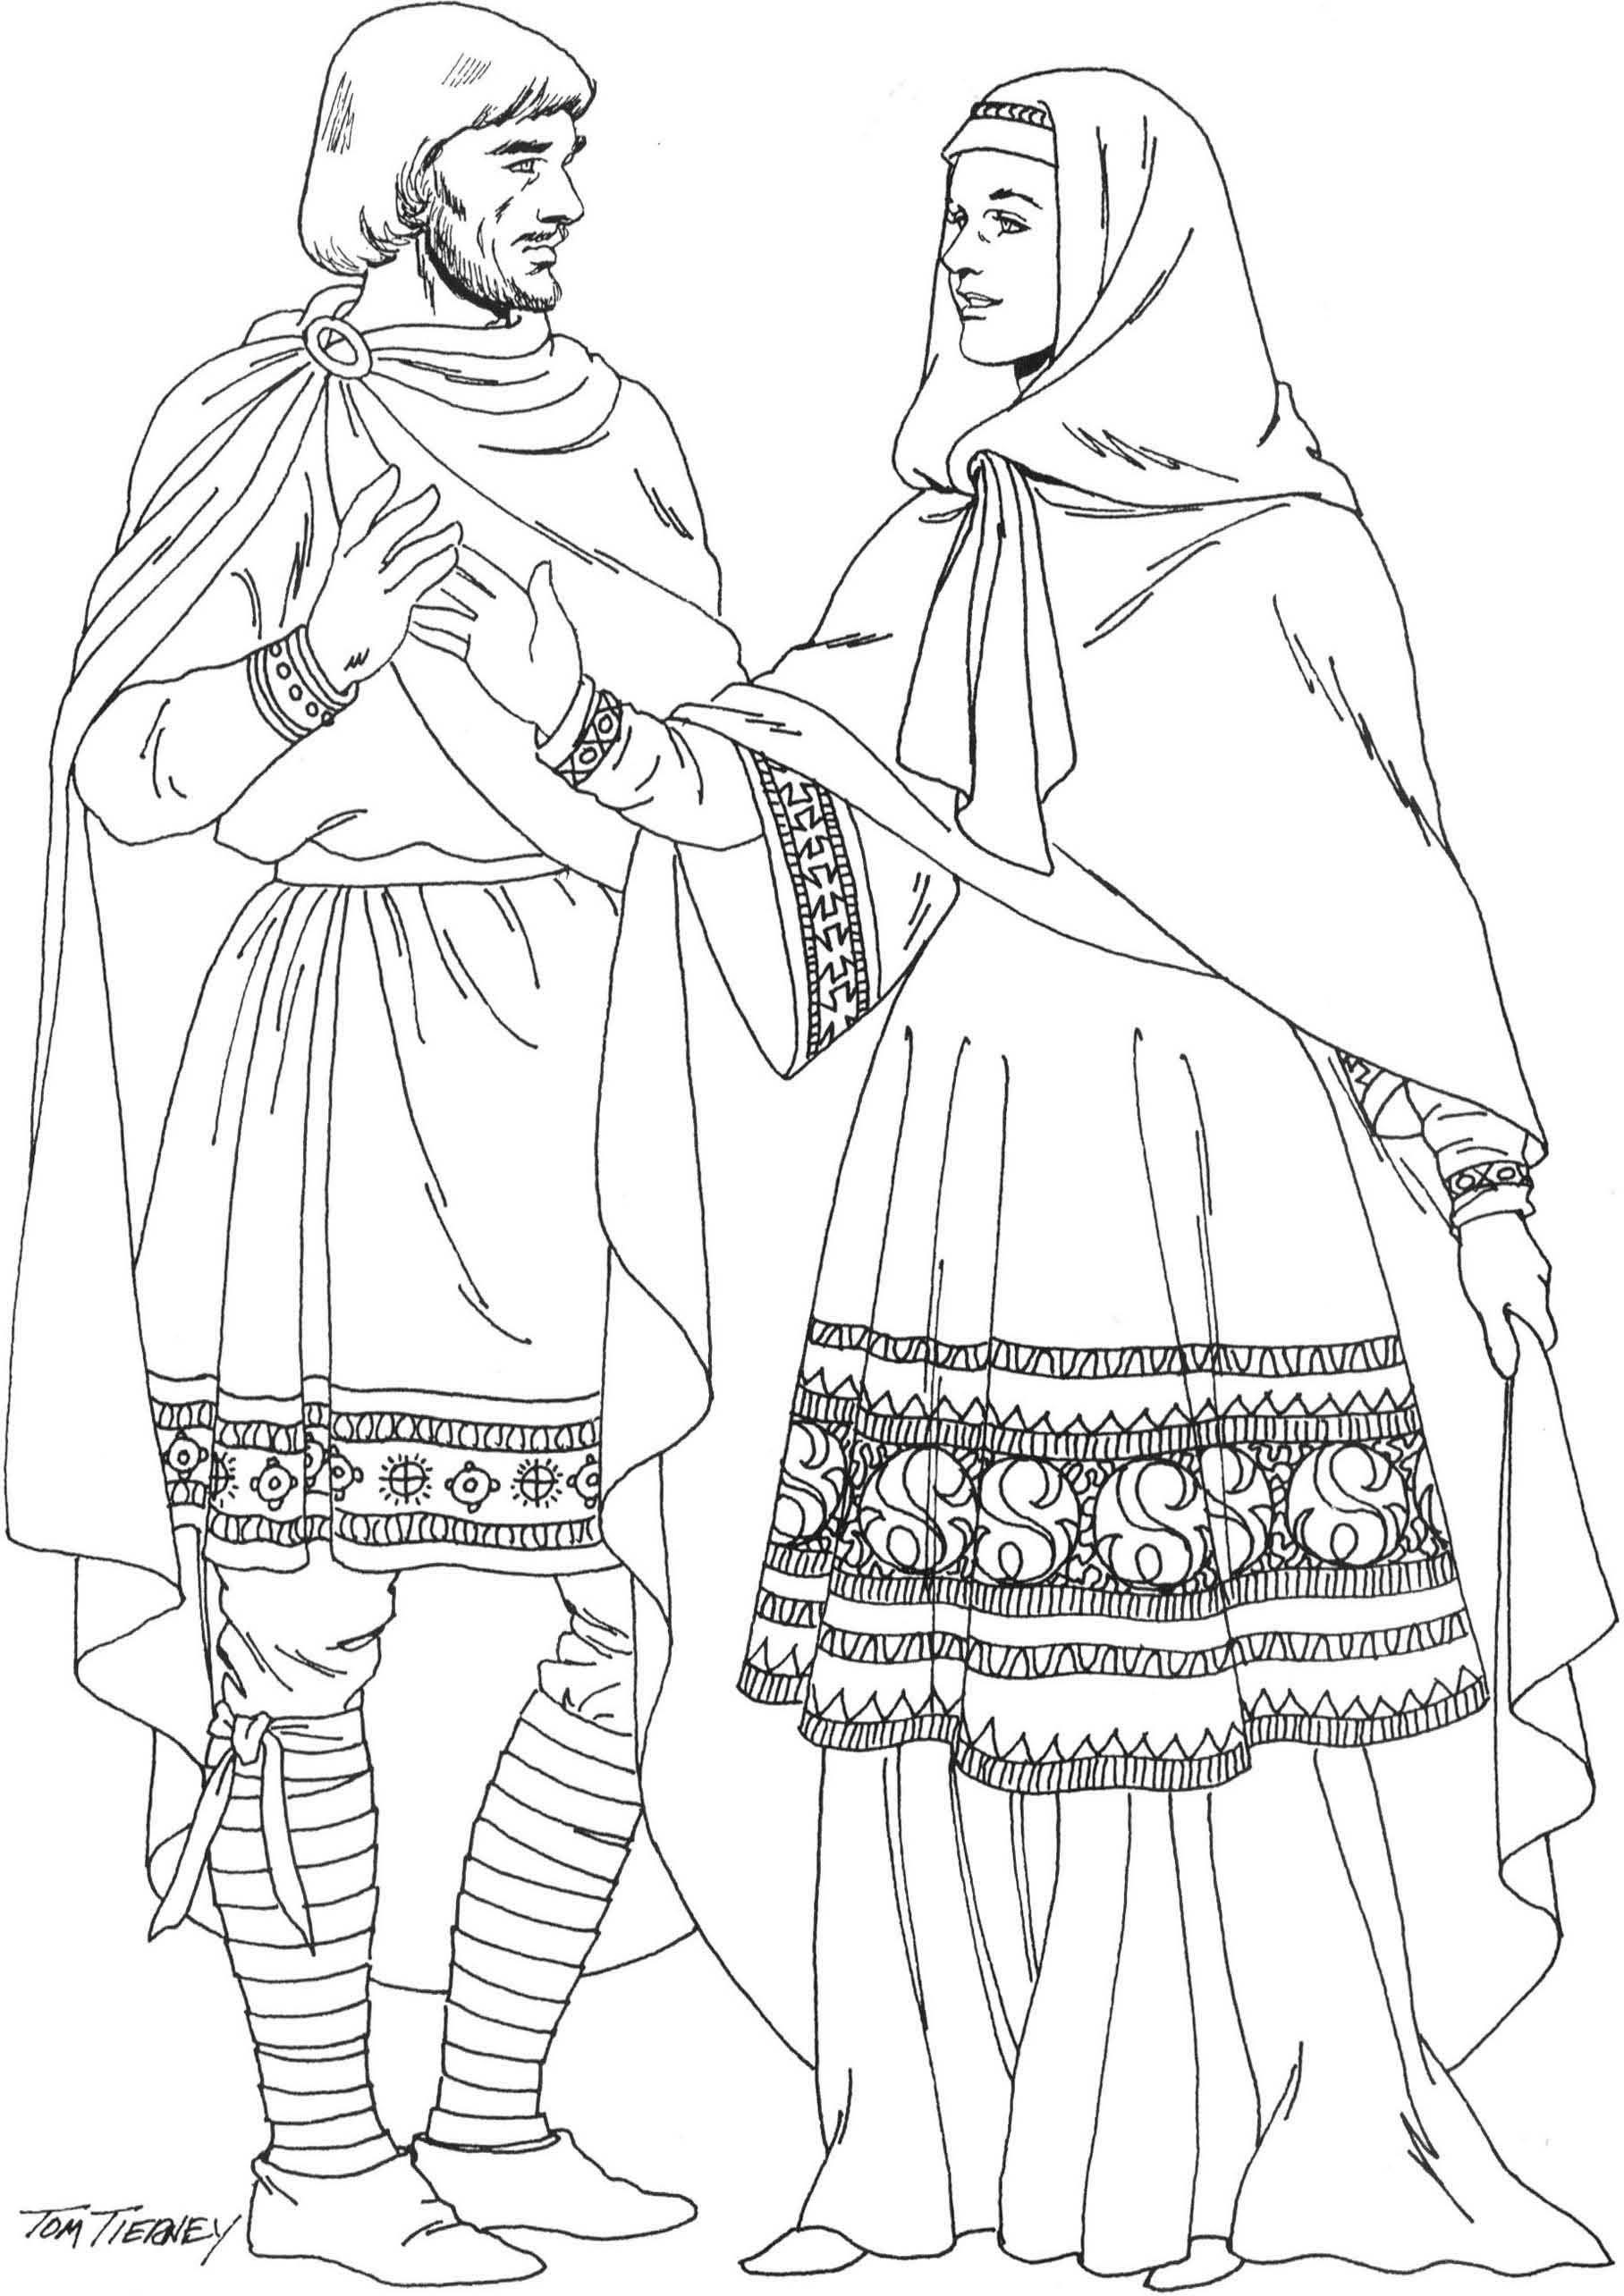 Left Anglo Saxon Nobleman Is Wearing An Embroidered Tunic